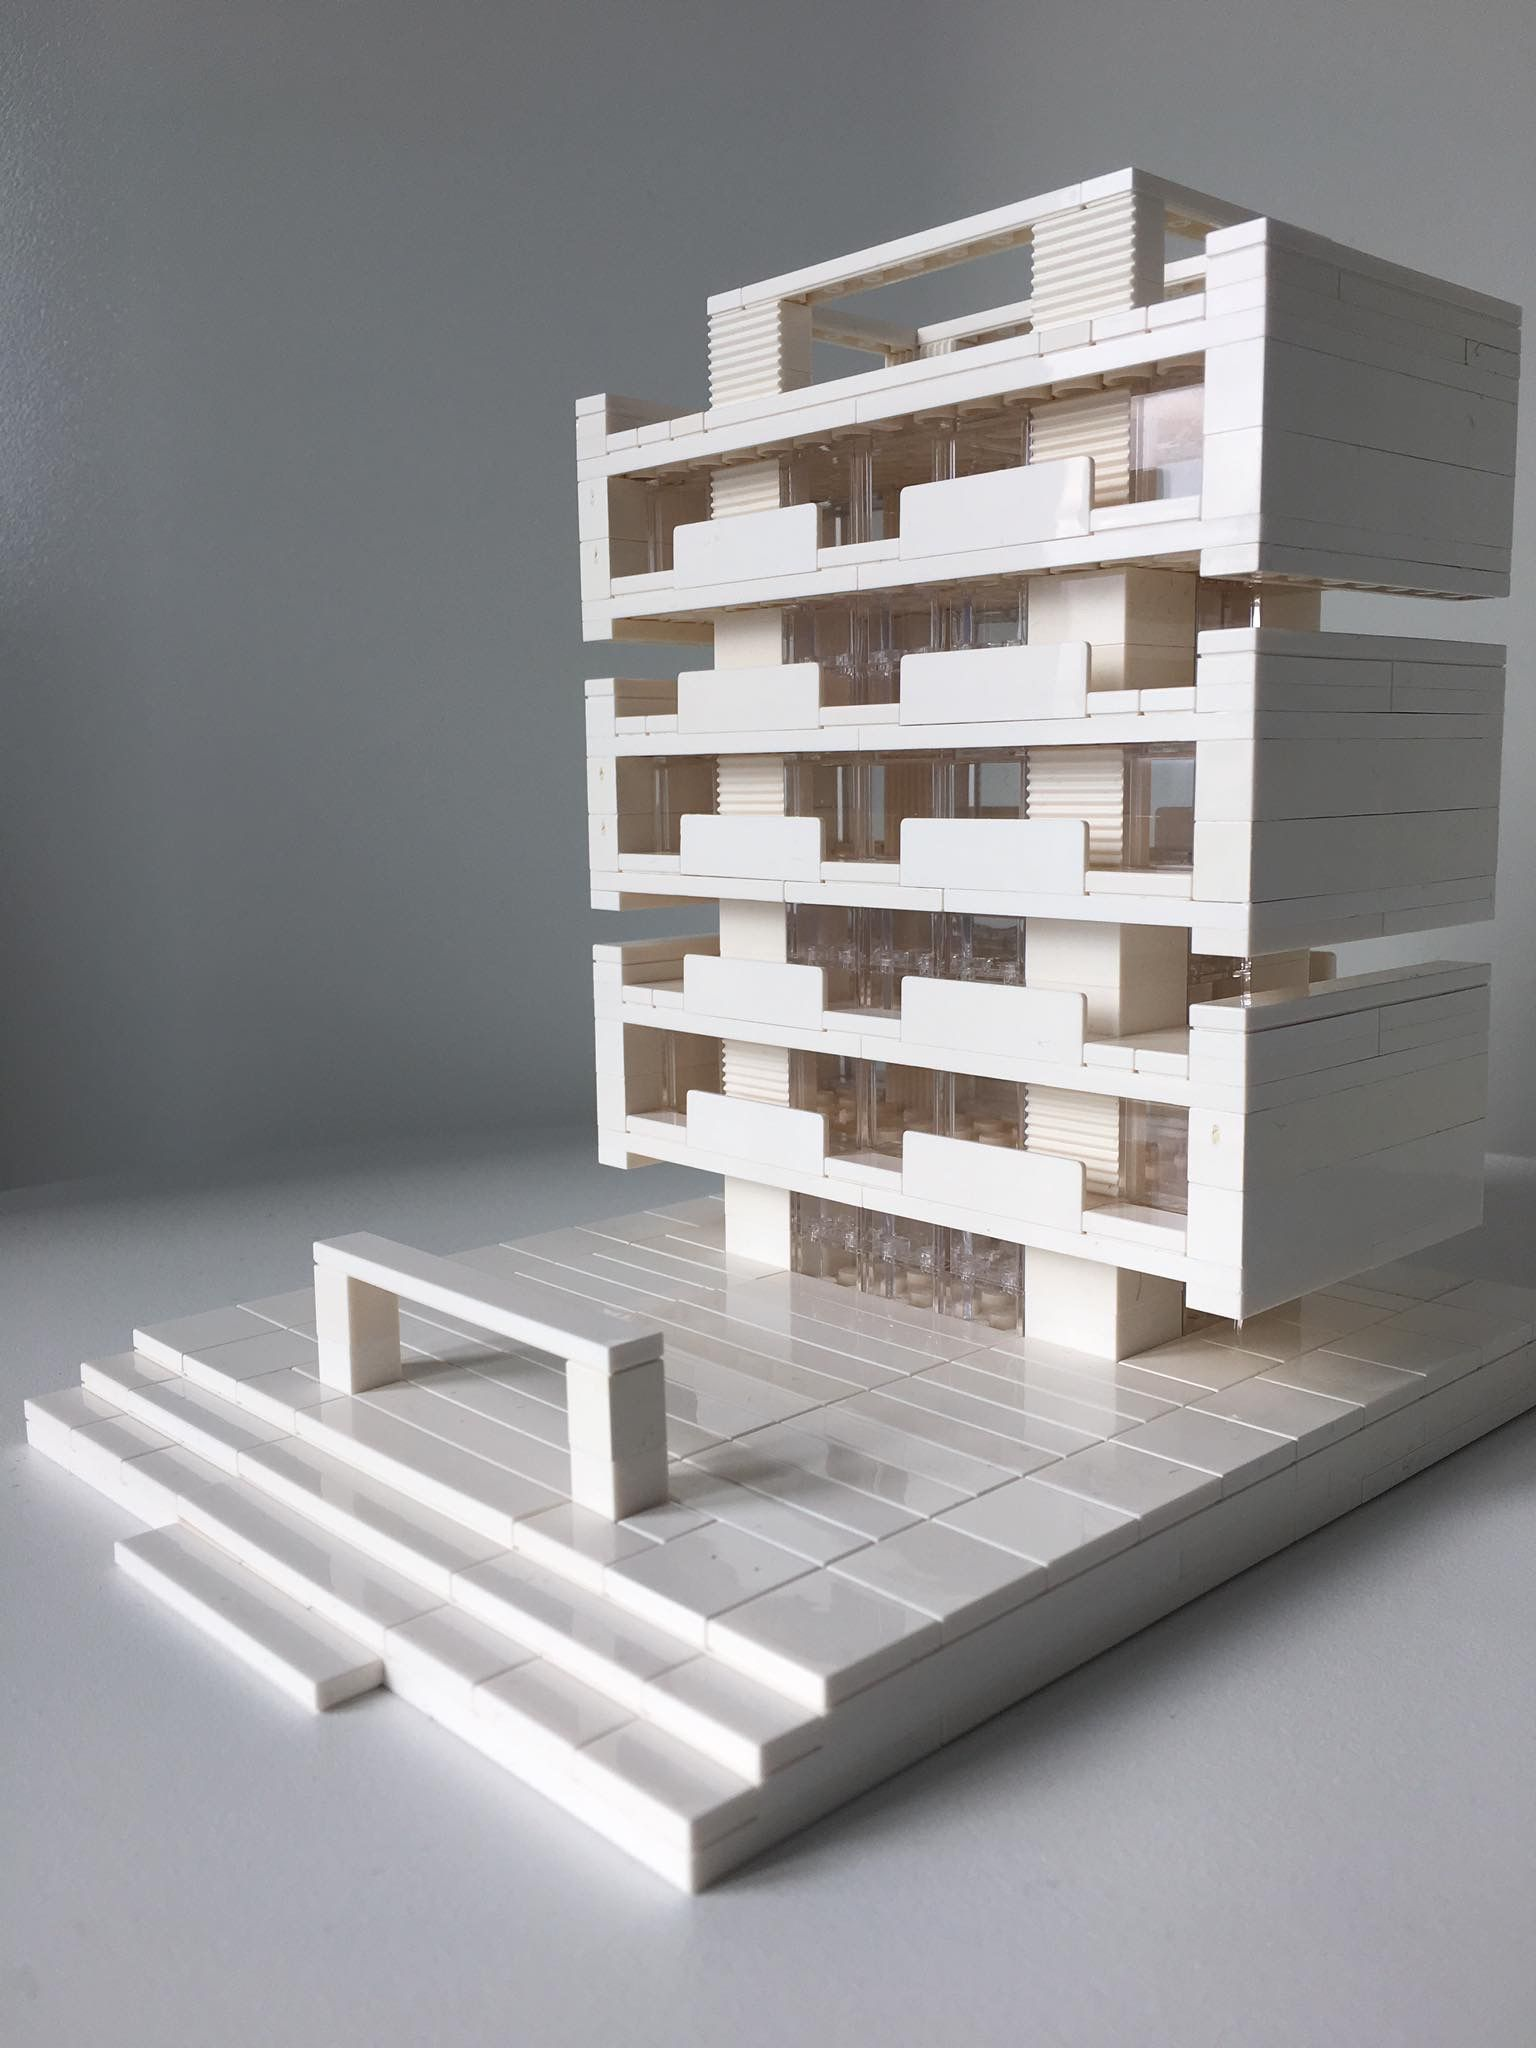 lego architecture lego architecture studio harm bron amsterdam lego pinterest lego. Black Bedroom Furniture Sets. Home Design Ideas